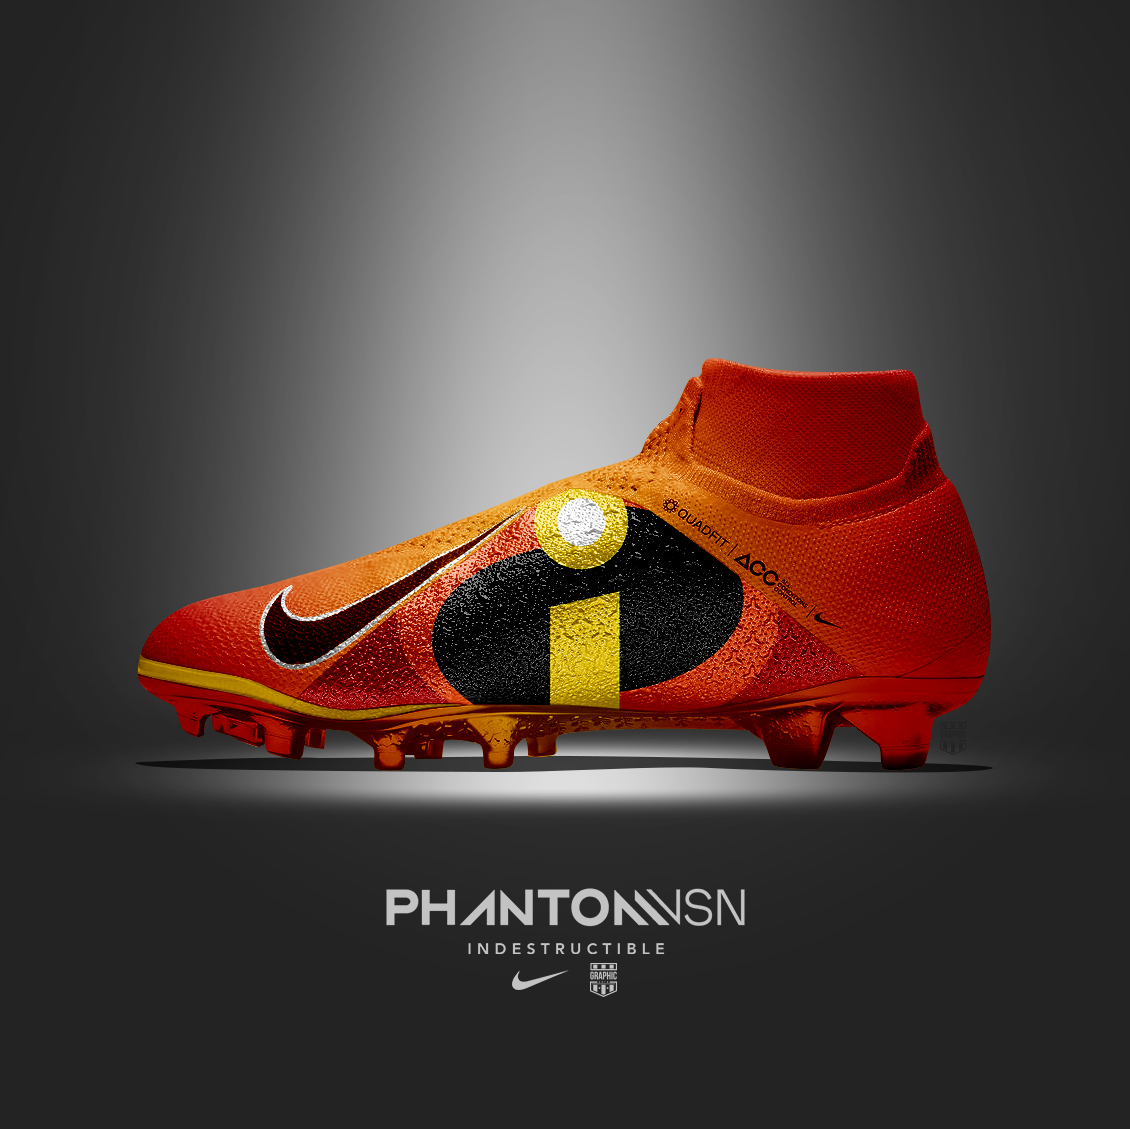 nike-phantom-vision-7eme-art-graphic-united-indestructible